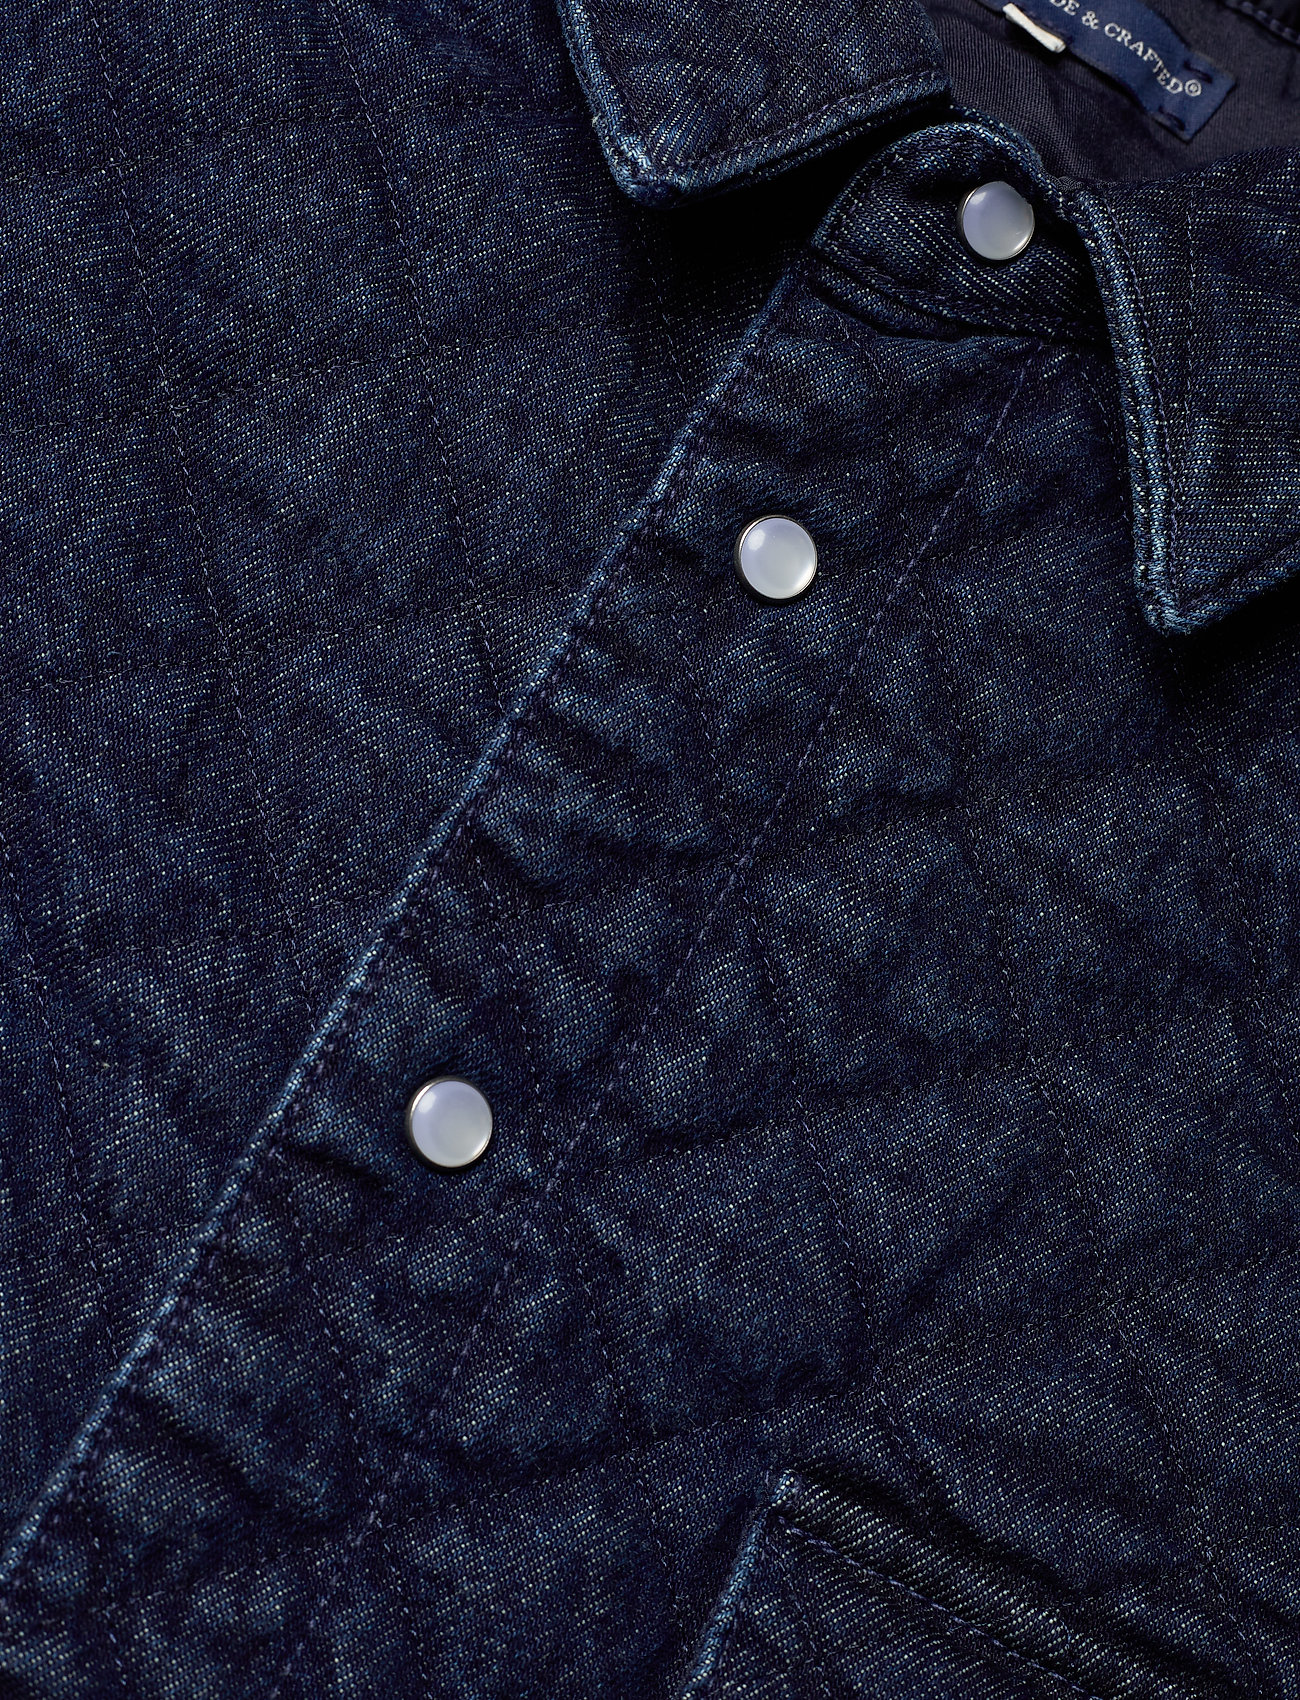 Levi's Made & Crafted Lmc Quilted Western Outbac - Chemises Dark Indigo Flat Finish